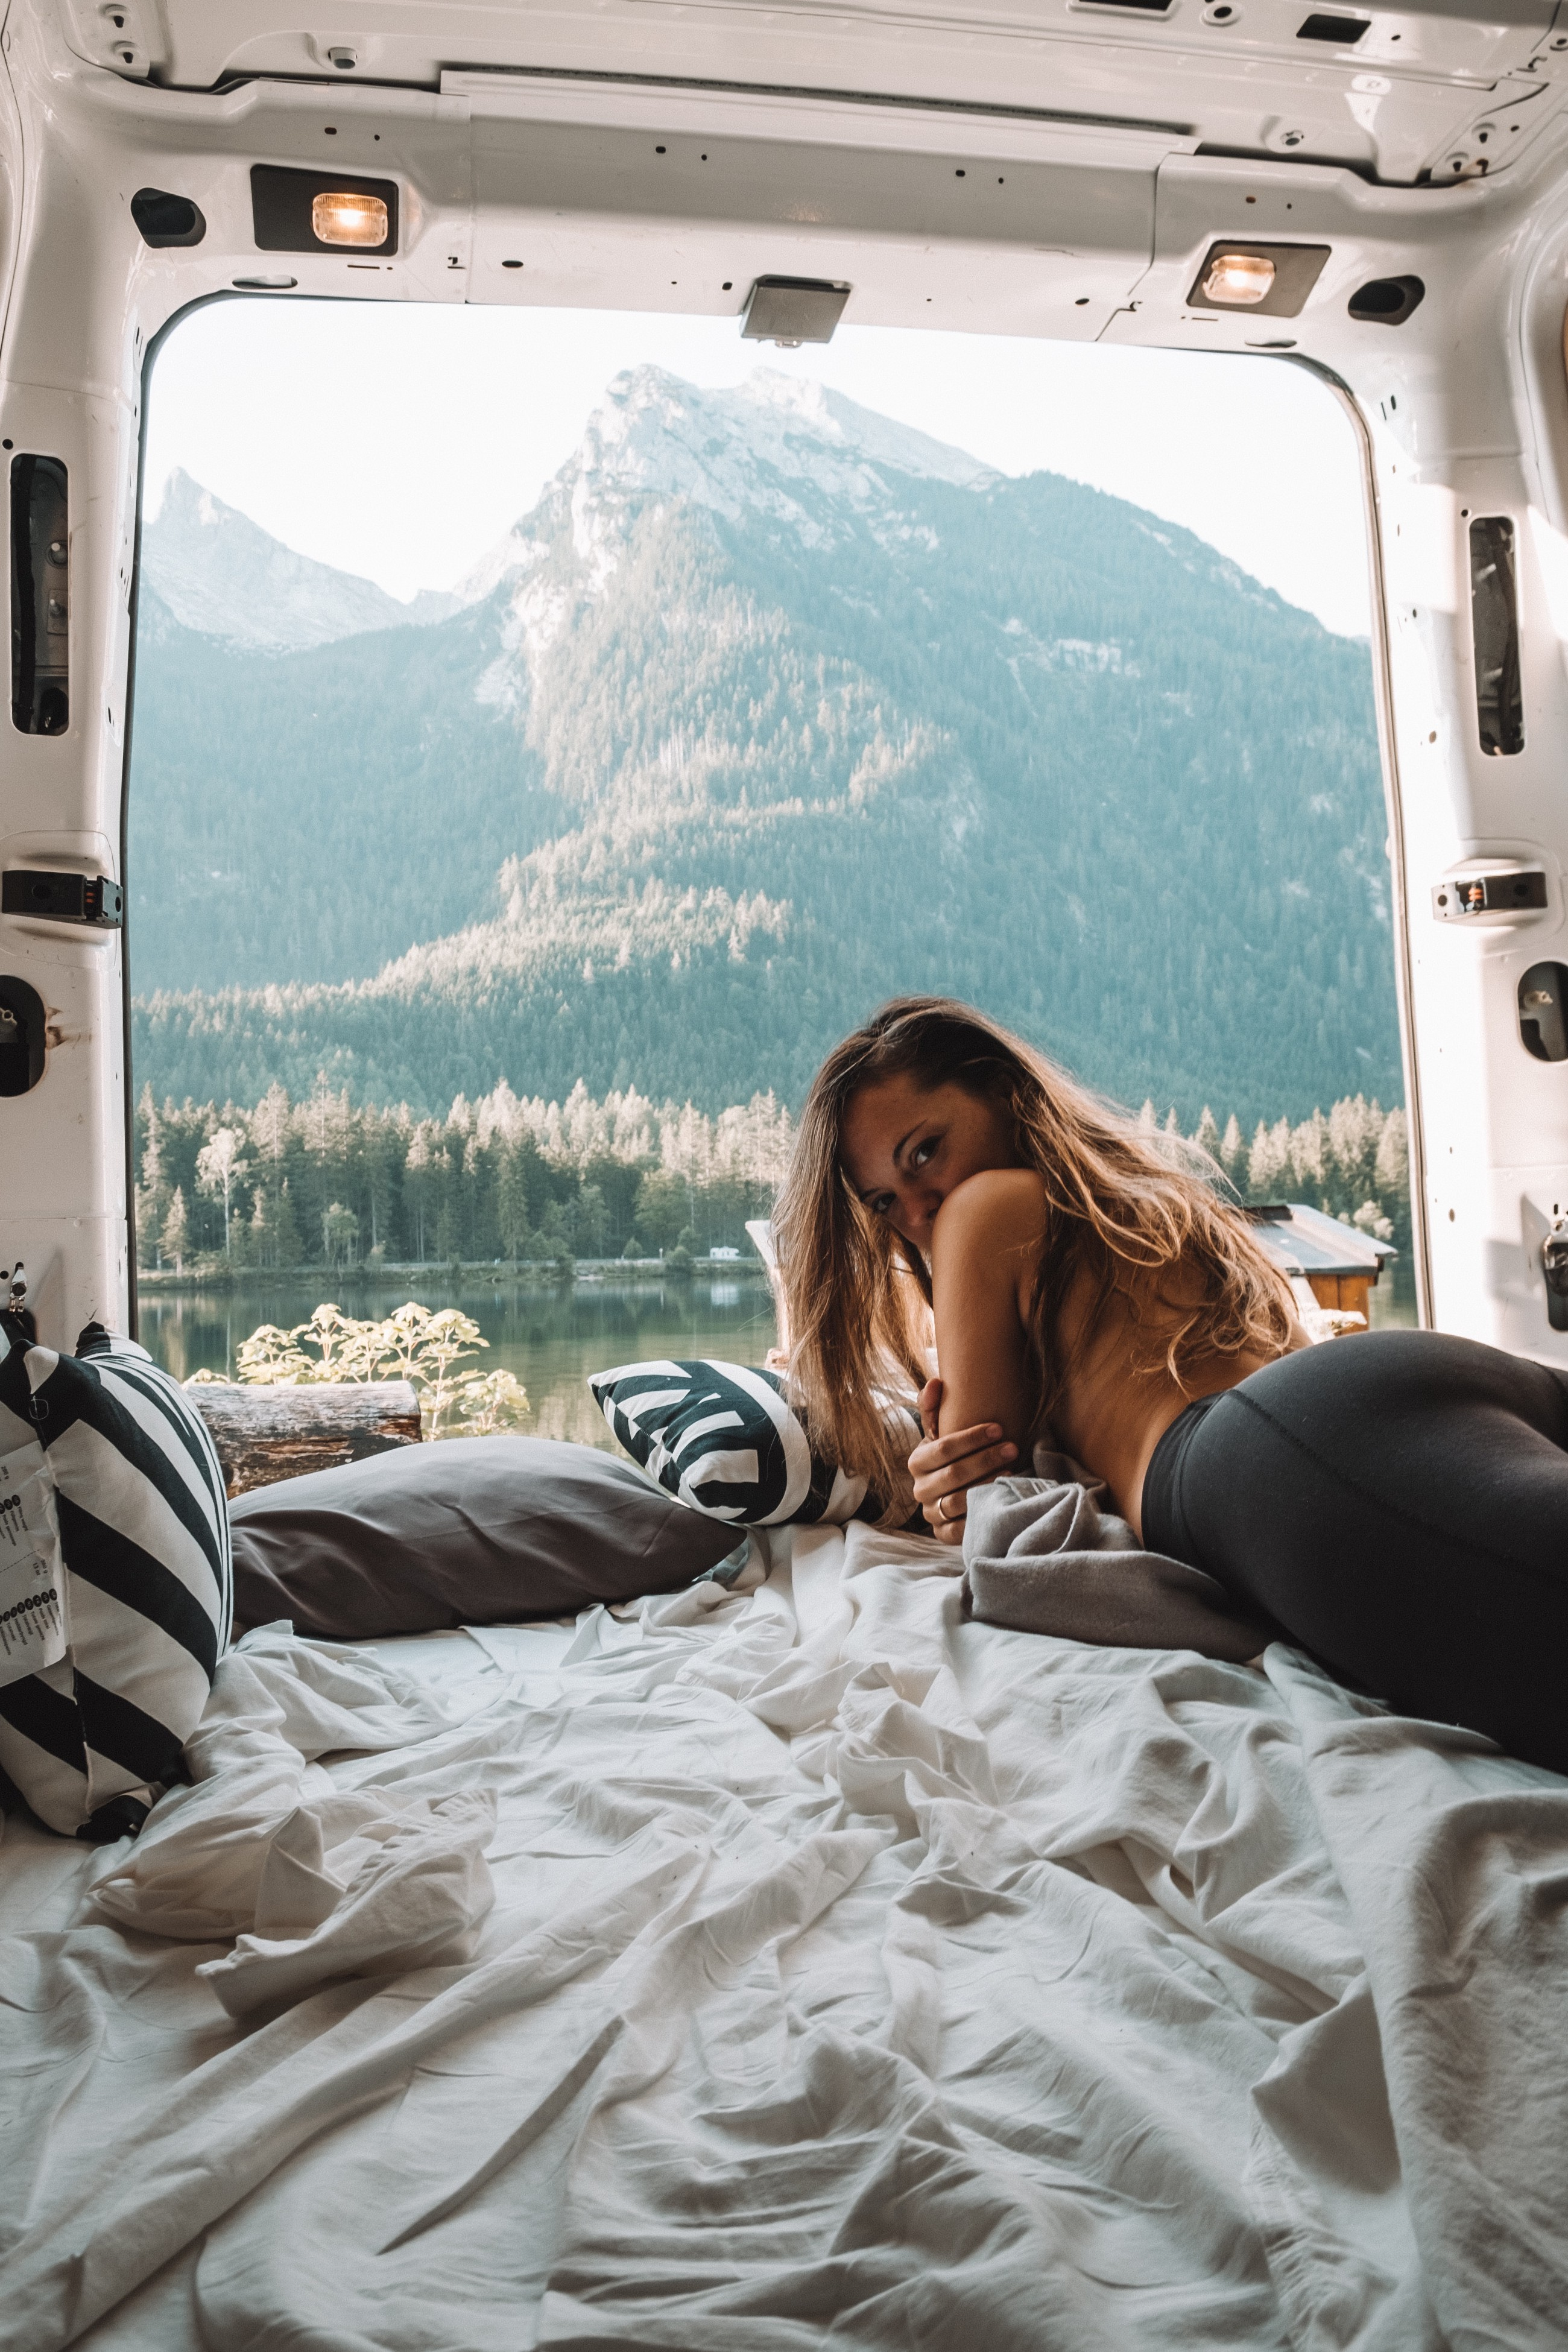 Why Are Millennials So Obsessed With #vanlife?